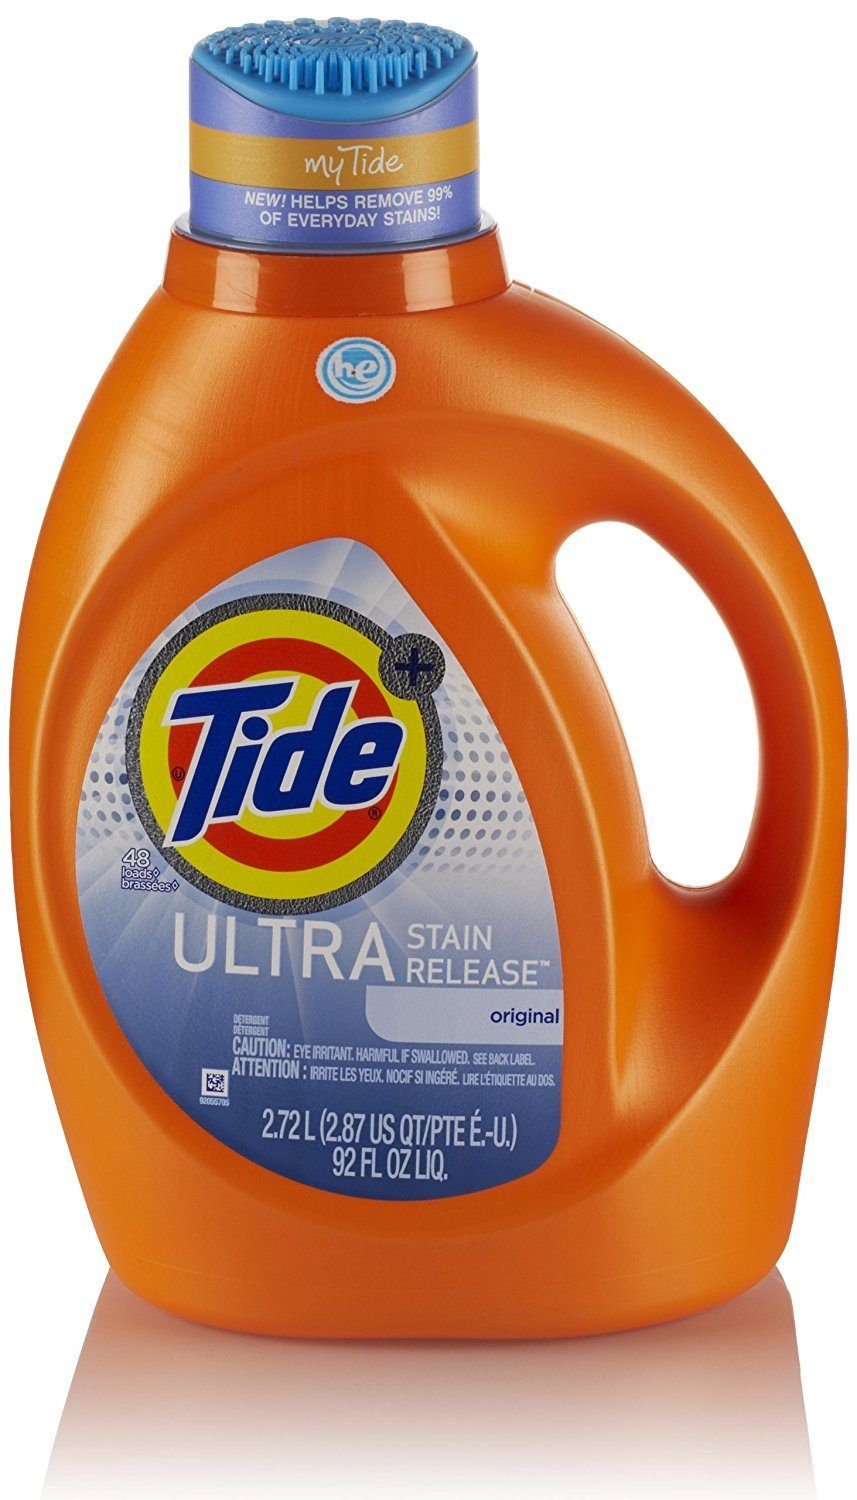 Tide Ultra Stain Release Laundry Detergent Laundry Liquid